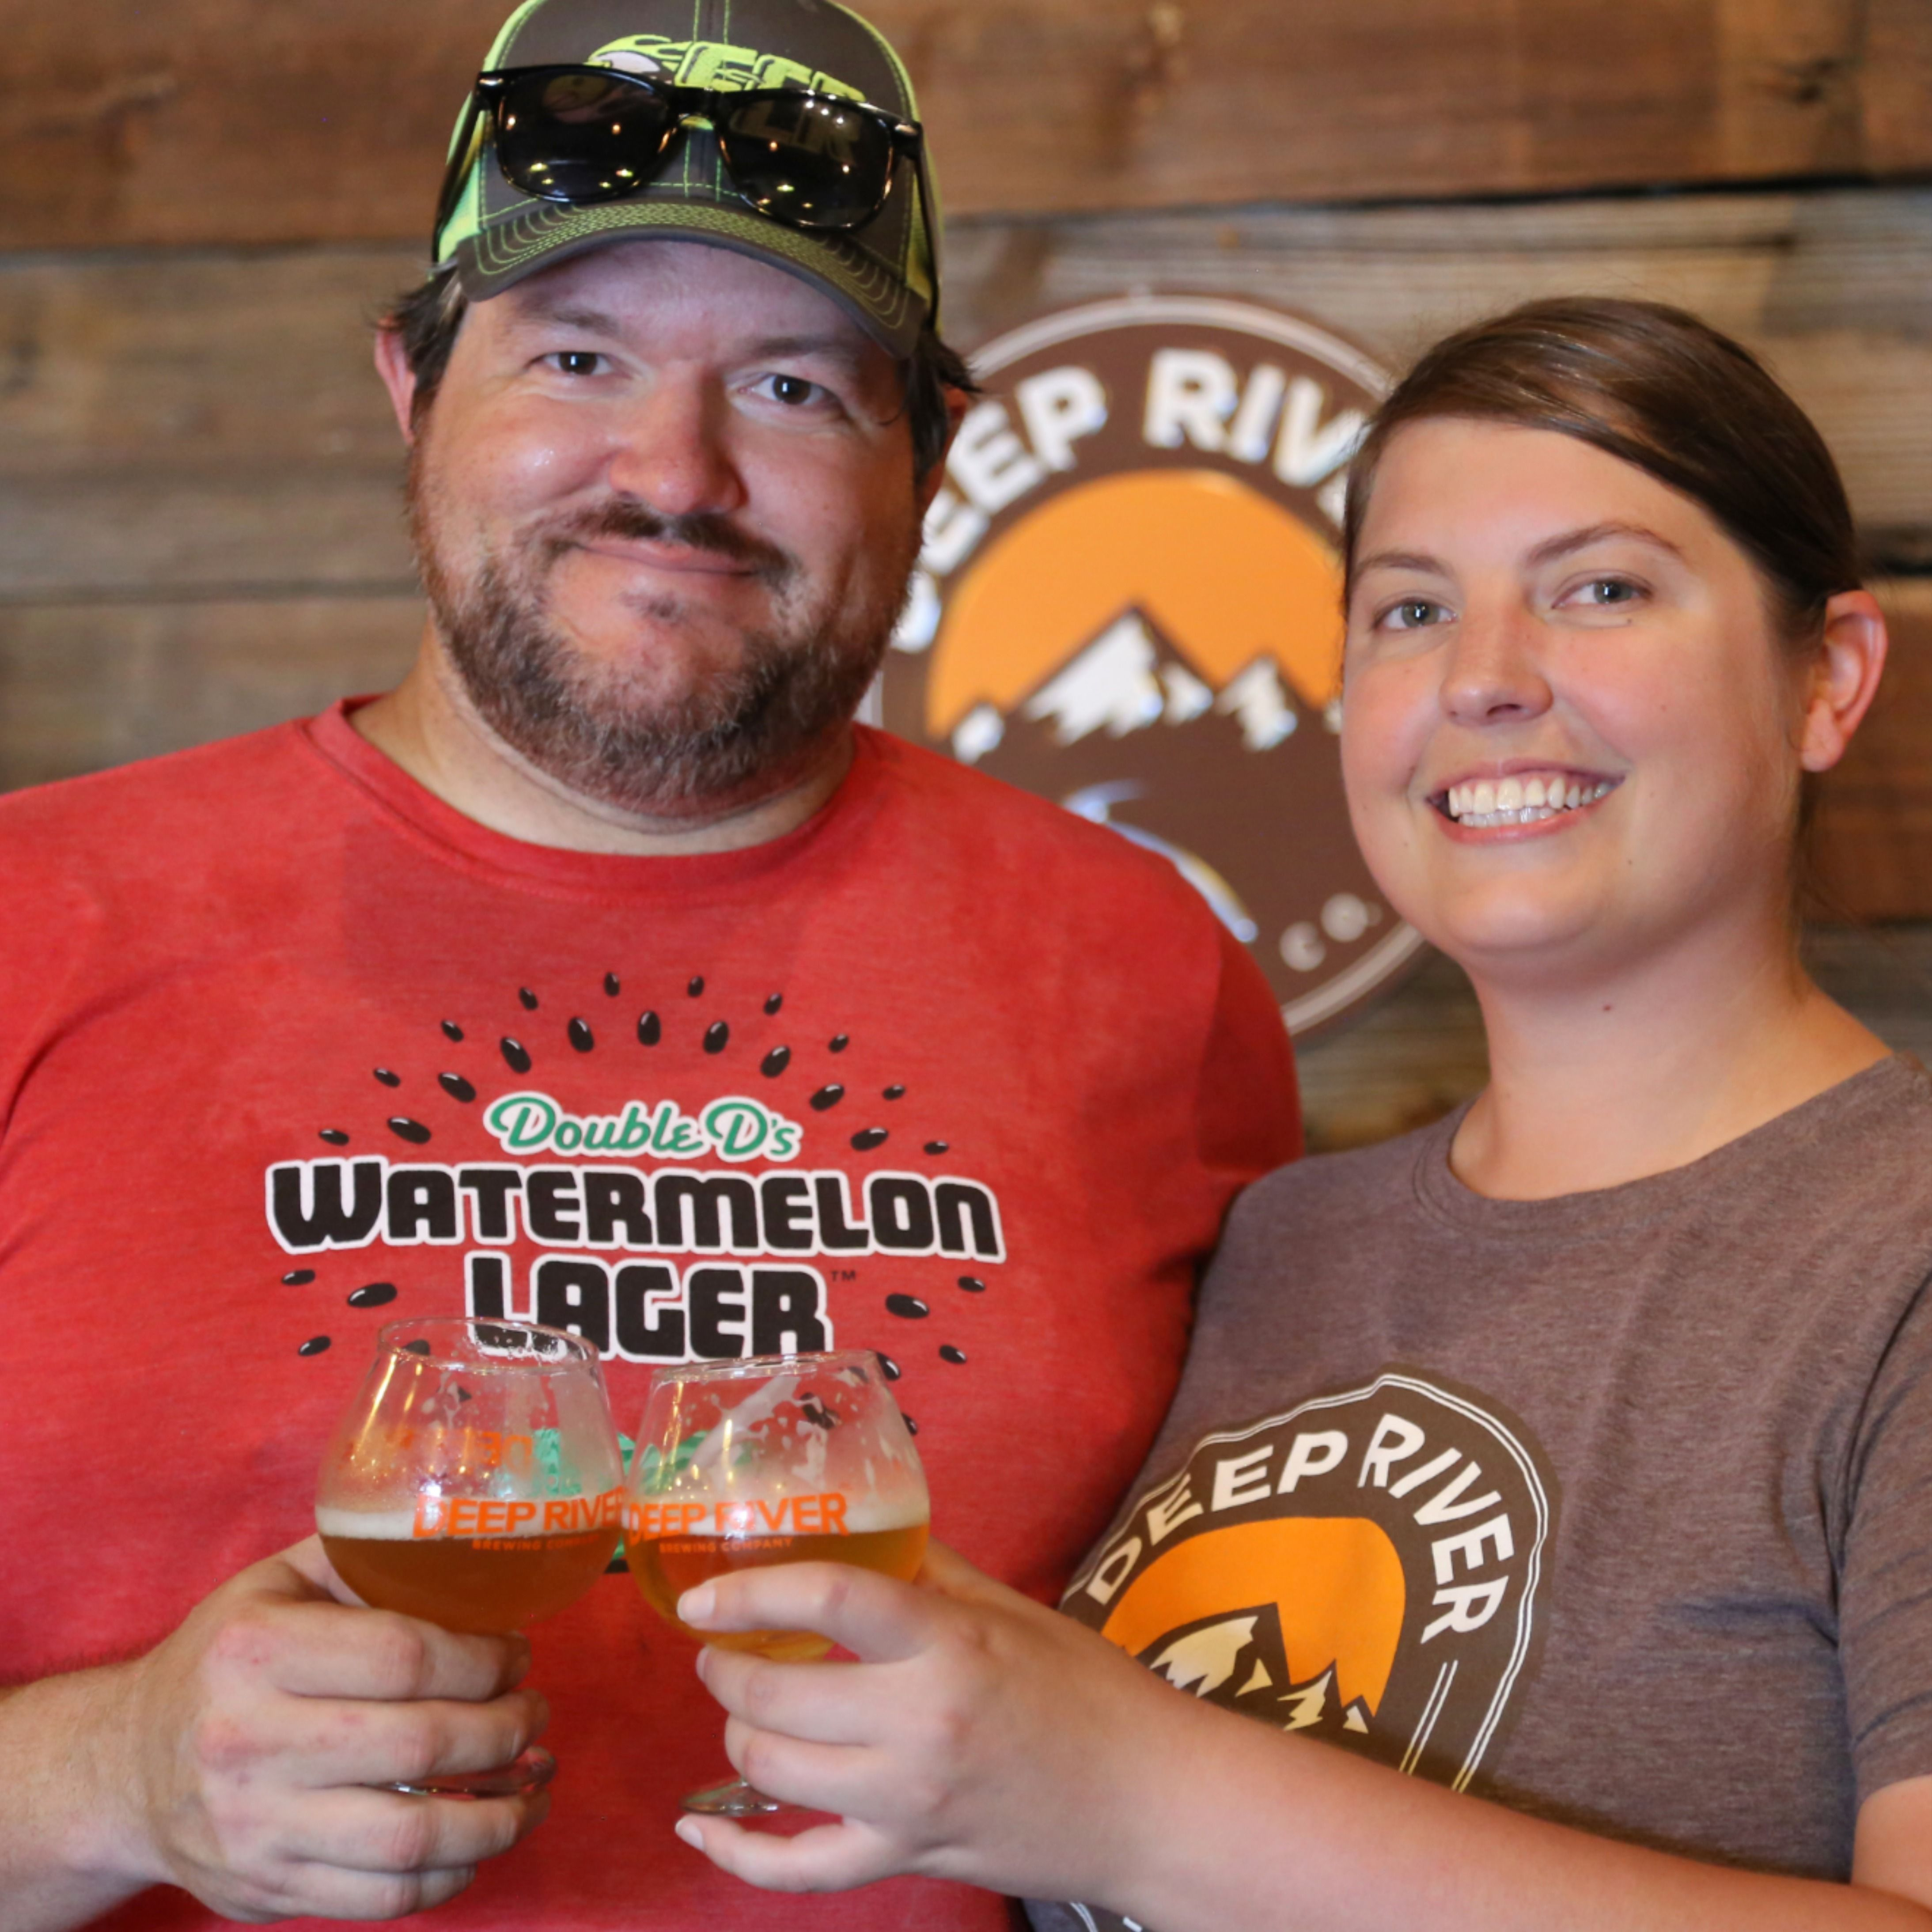 Meet Deep River Brewing Owners Paul And Lynn Auclair Who Opened The First Legal Brewery In Joco In 2020 Craft Beer Brewery Lynn